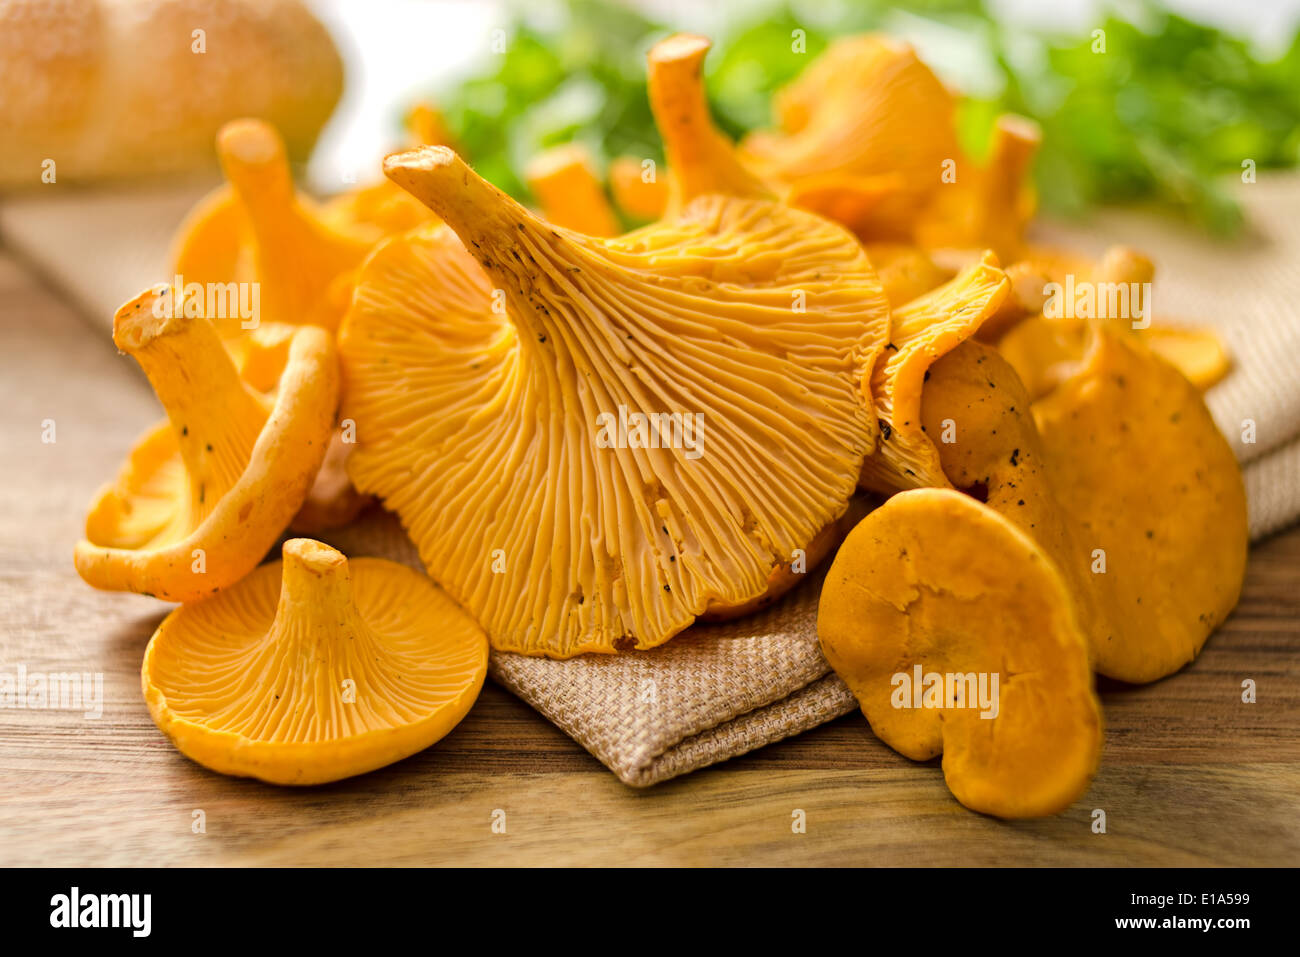 A grouping of freshly picked chanterelle mushrooms. - Stock Image